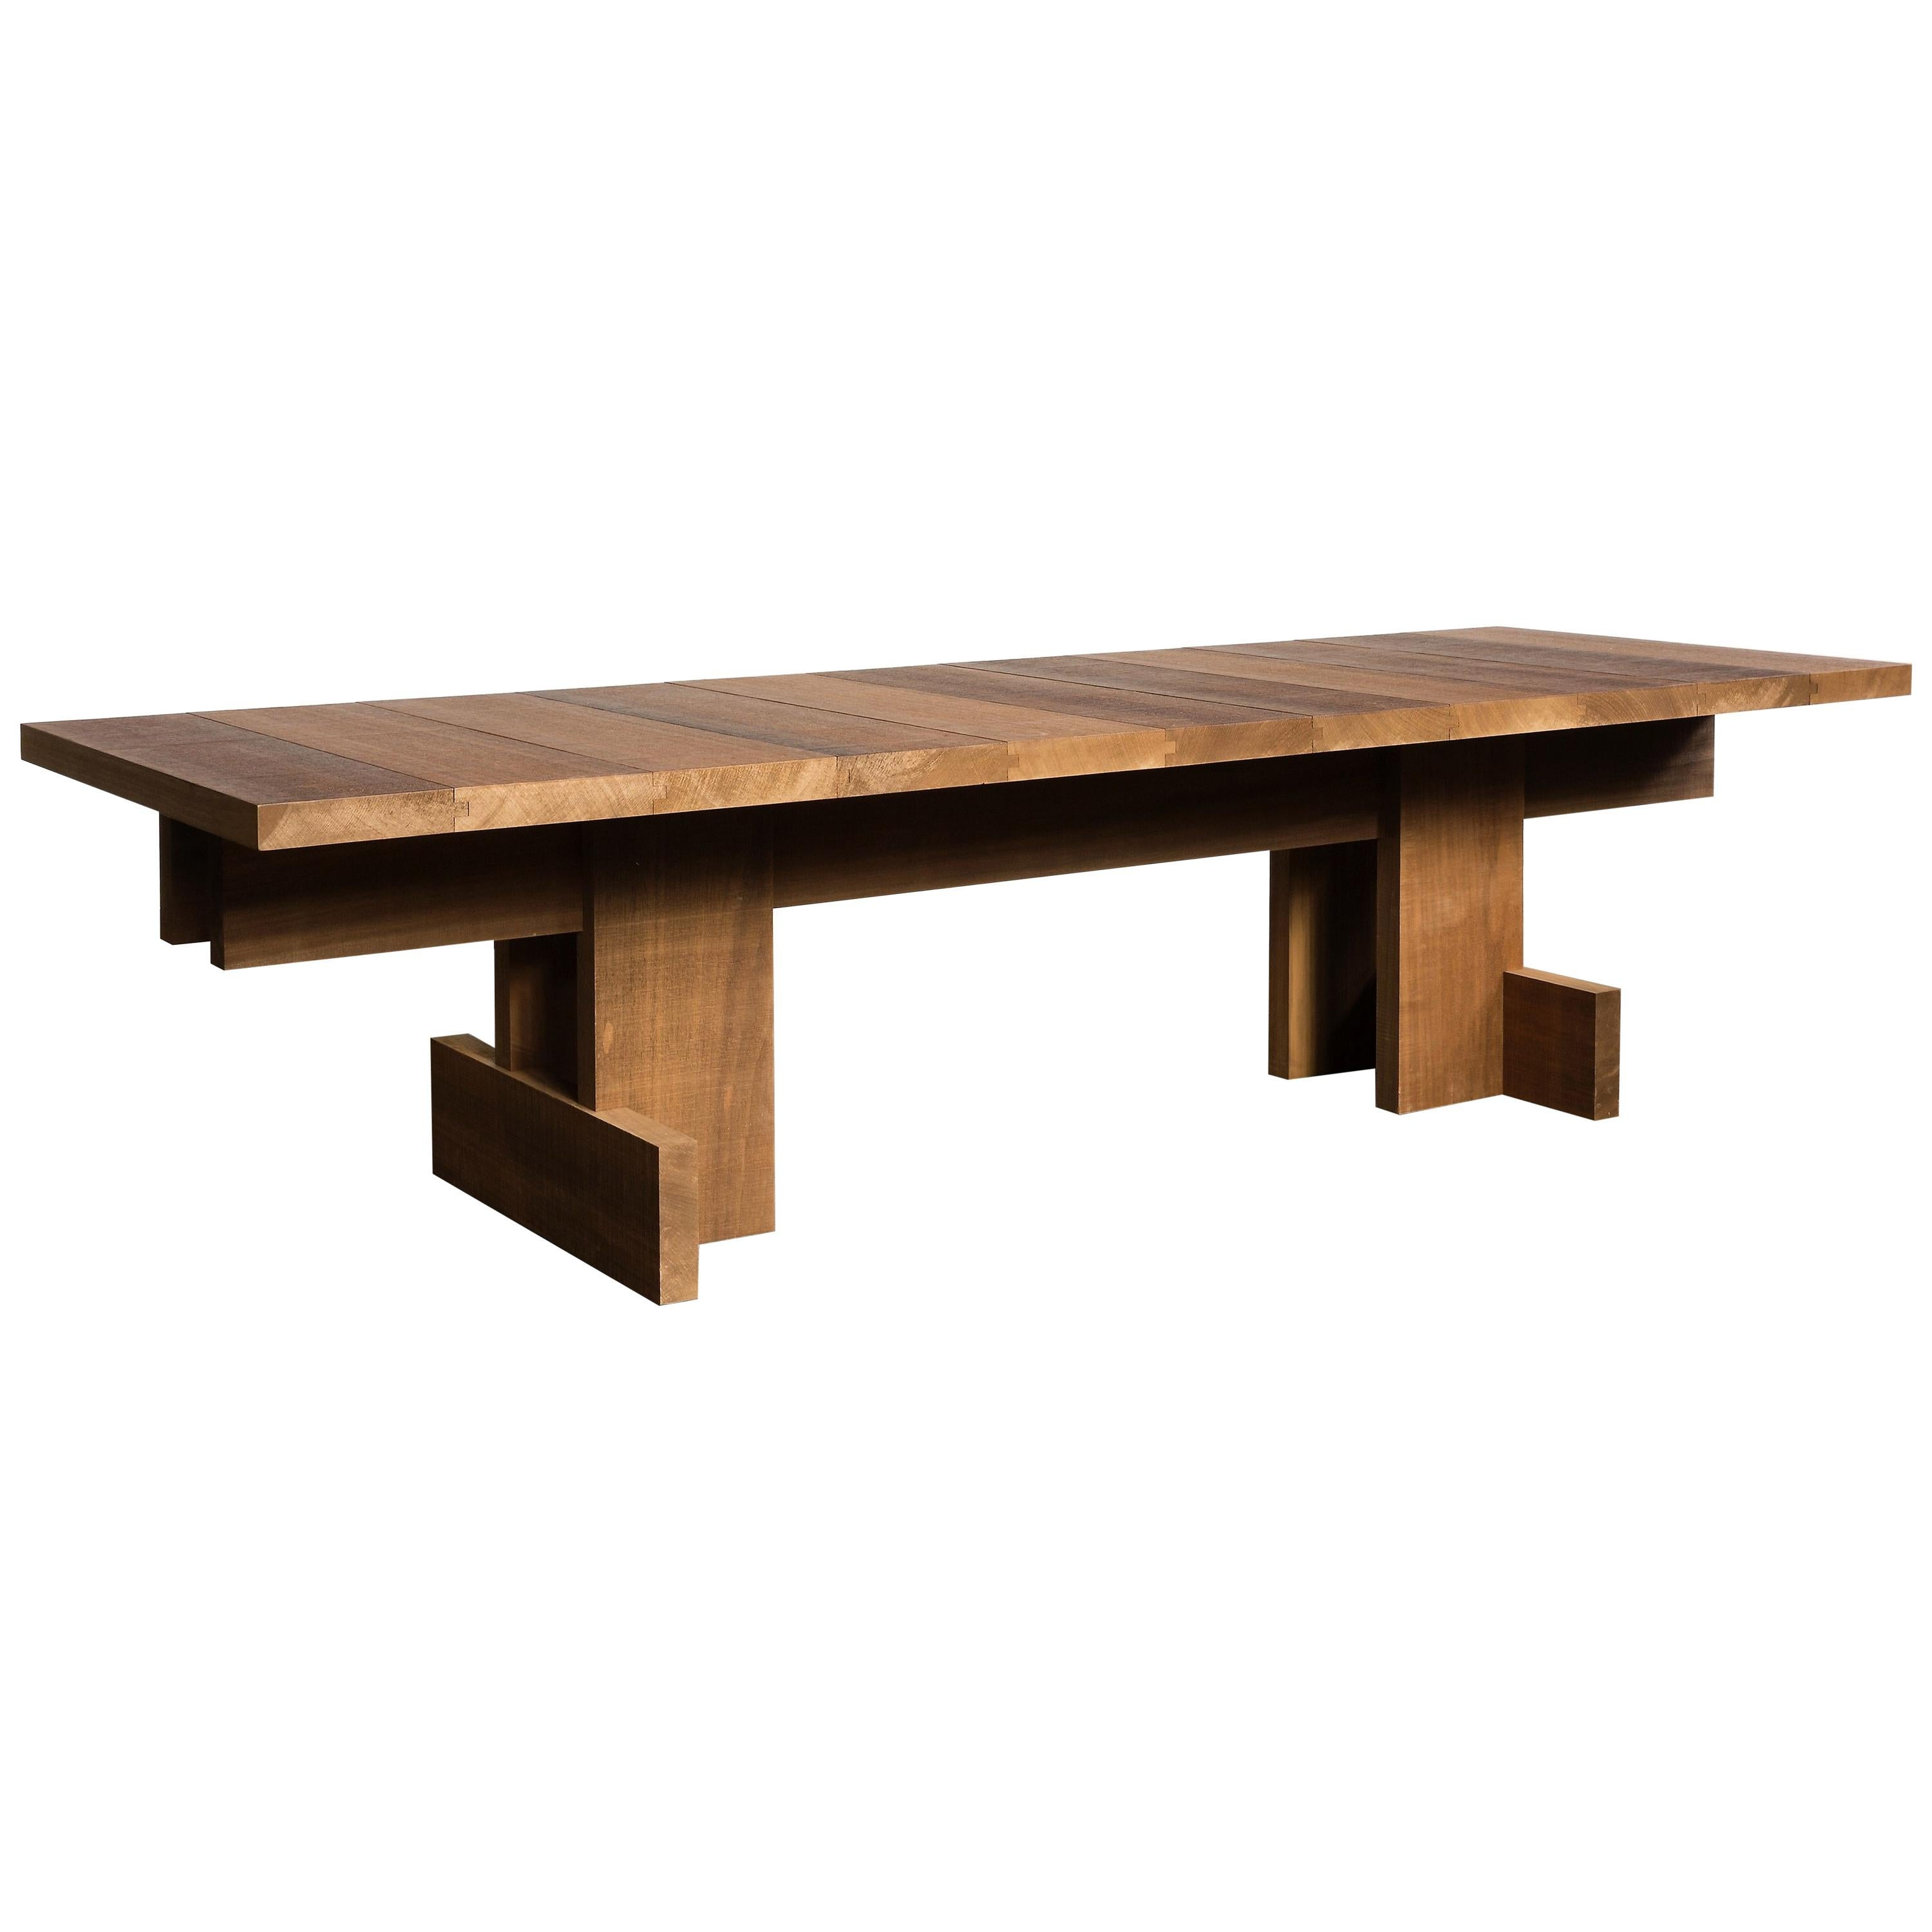 Contemporary Table for Indoors/Outdoors Designed in Brutalist Style